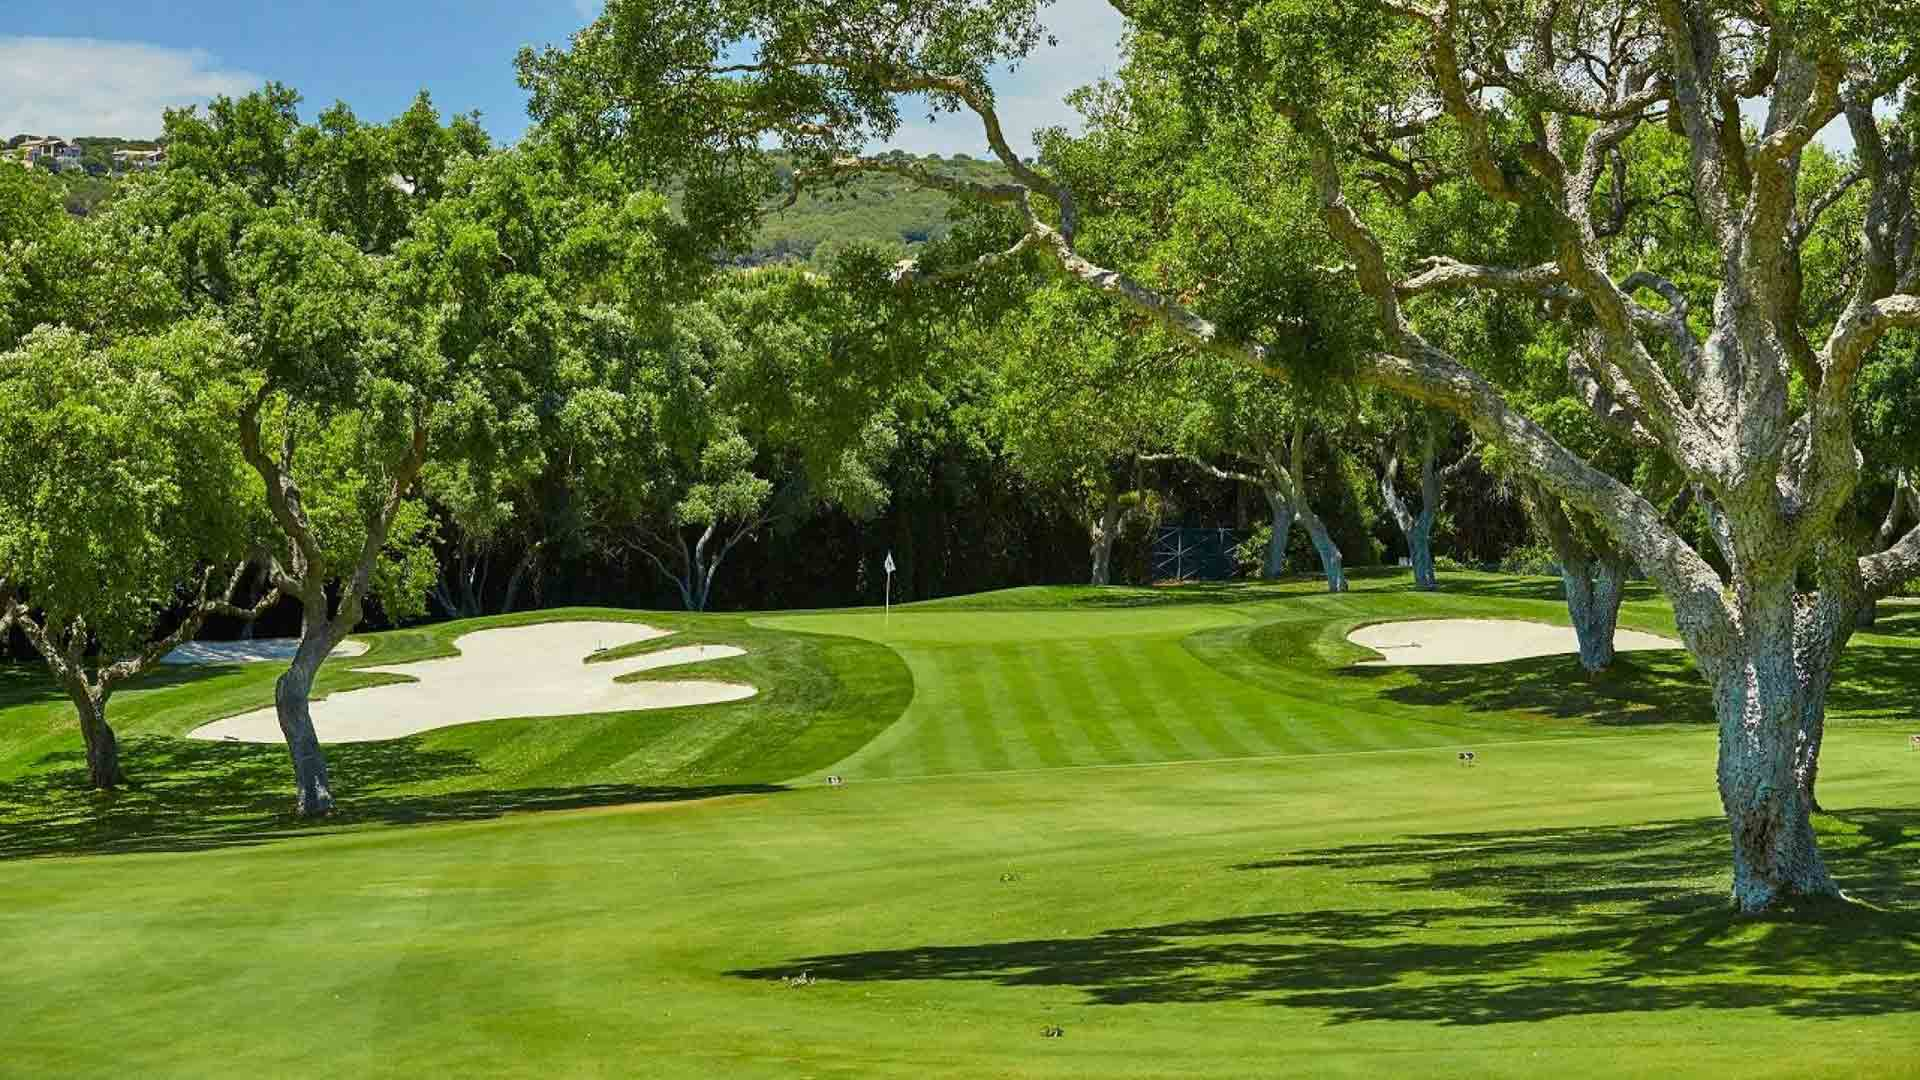 Valderrama spain - Photo 1